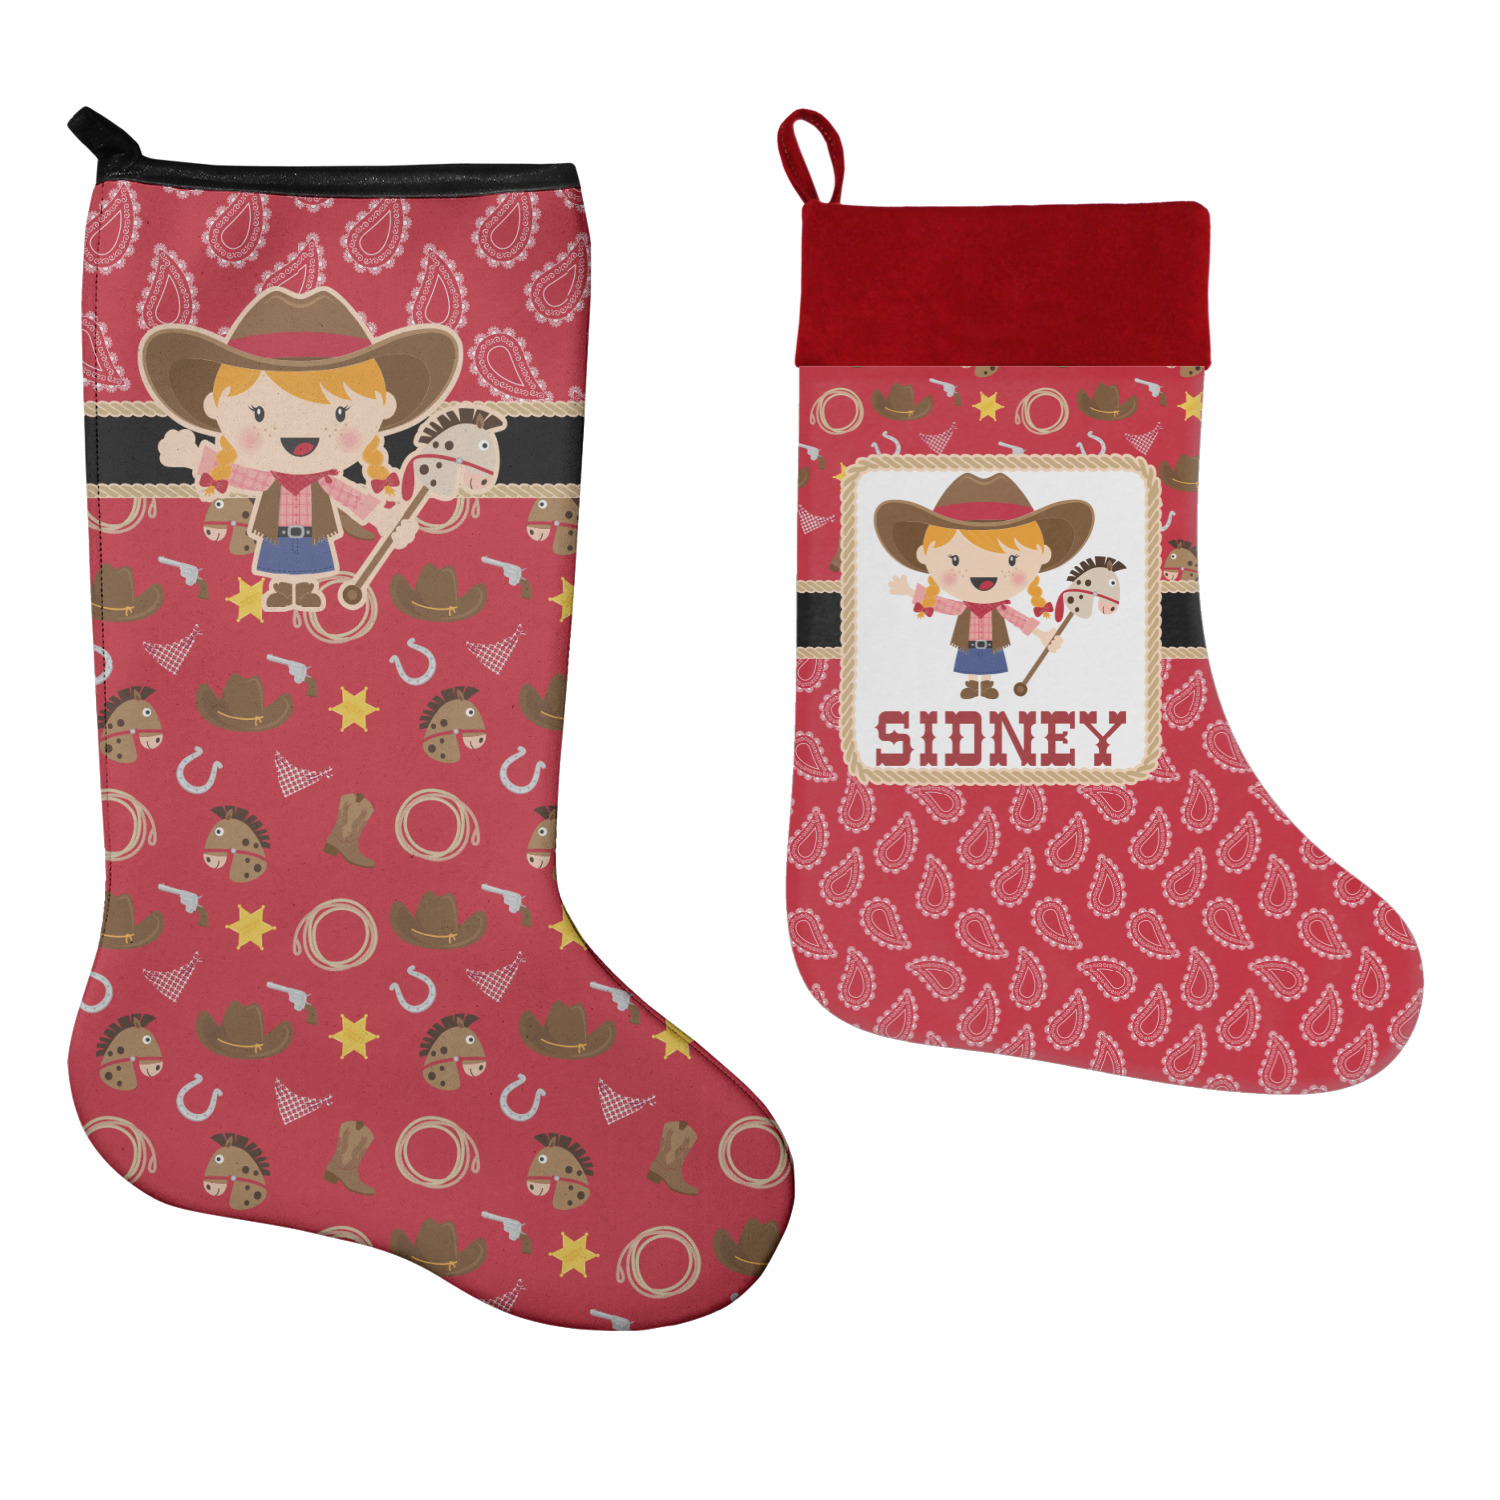 Western Christmas Stockings Personalized.Red Western Christmas Stocking Personalized